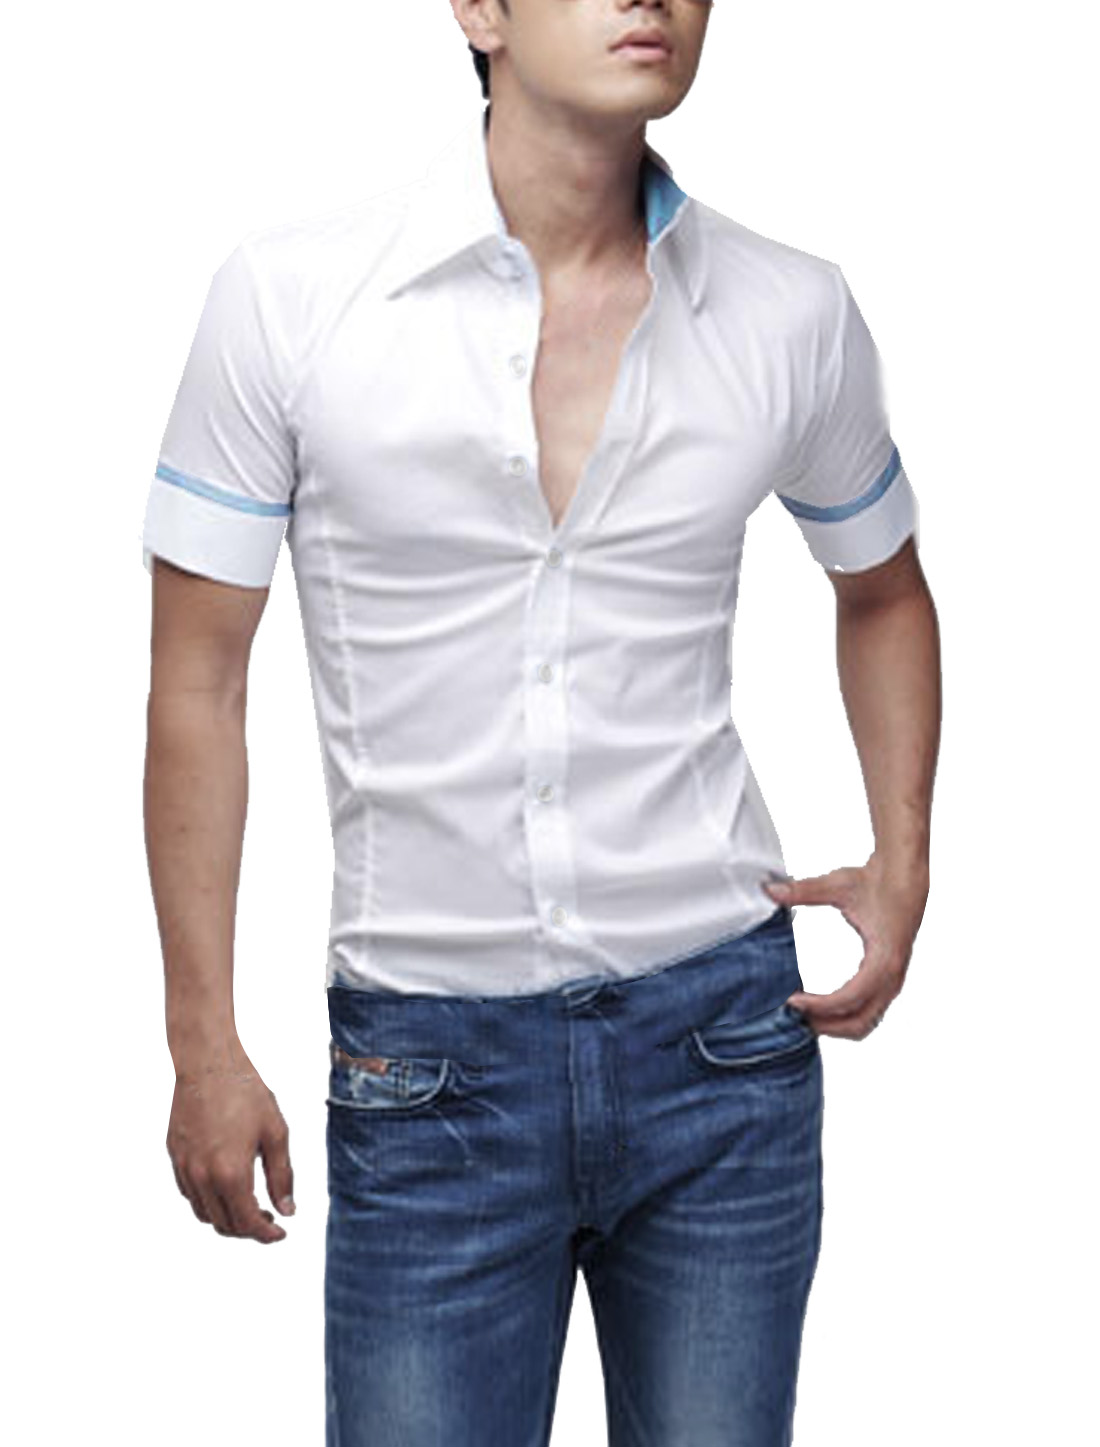 Men Fashion White Short-sleeved Single Breasted Round Hem Top Shirt L